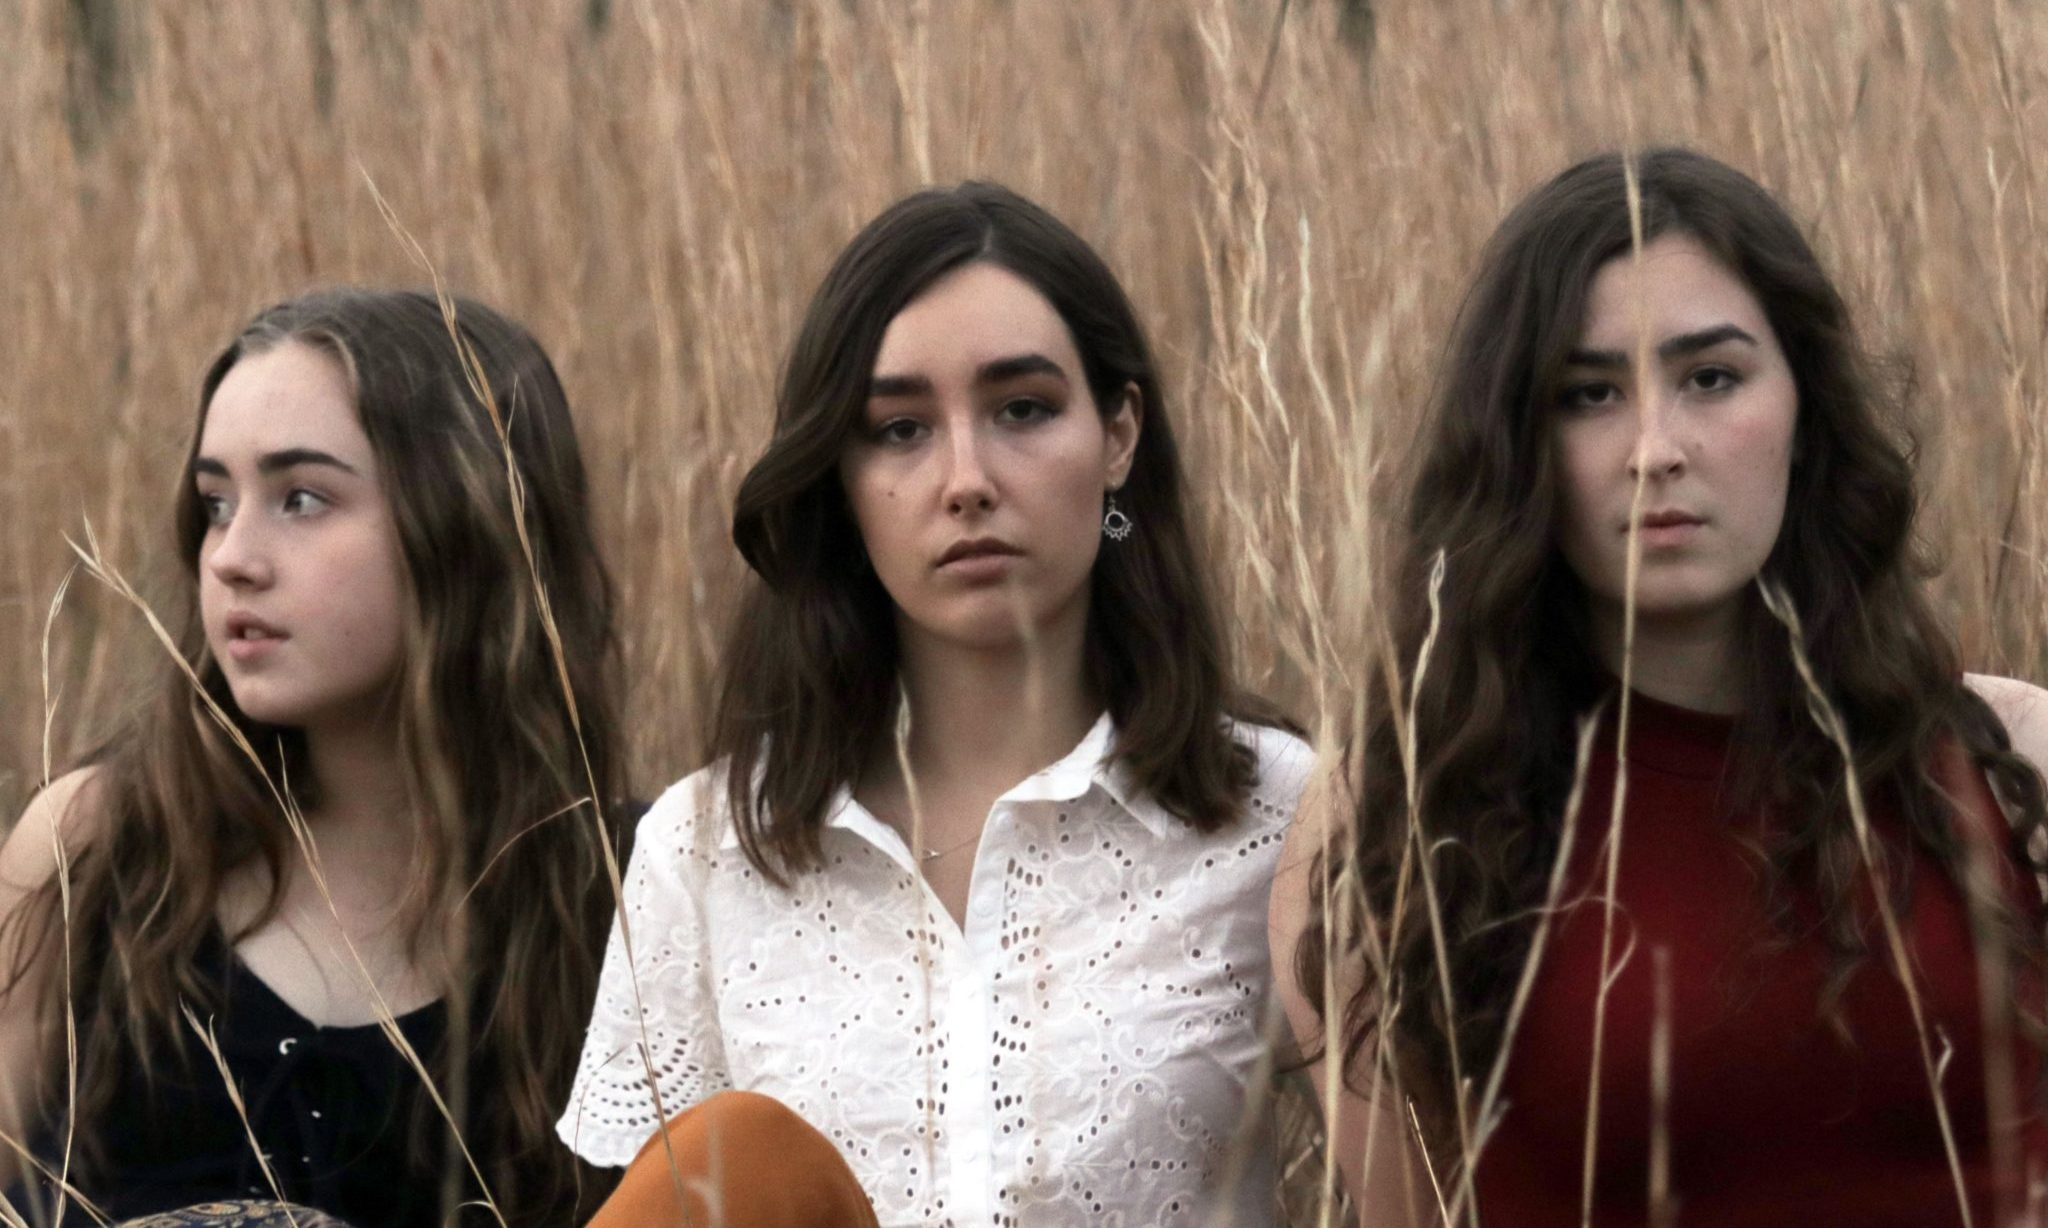 music video recommendation-crumbled-by-little quirks-Australia-indie music-new music-indie folk-music blog-indie blog-wolf in a suit-wolfinasuit-wolf in a suit blog-wolf in a suit music blog